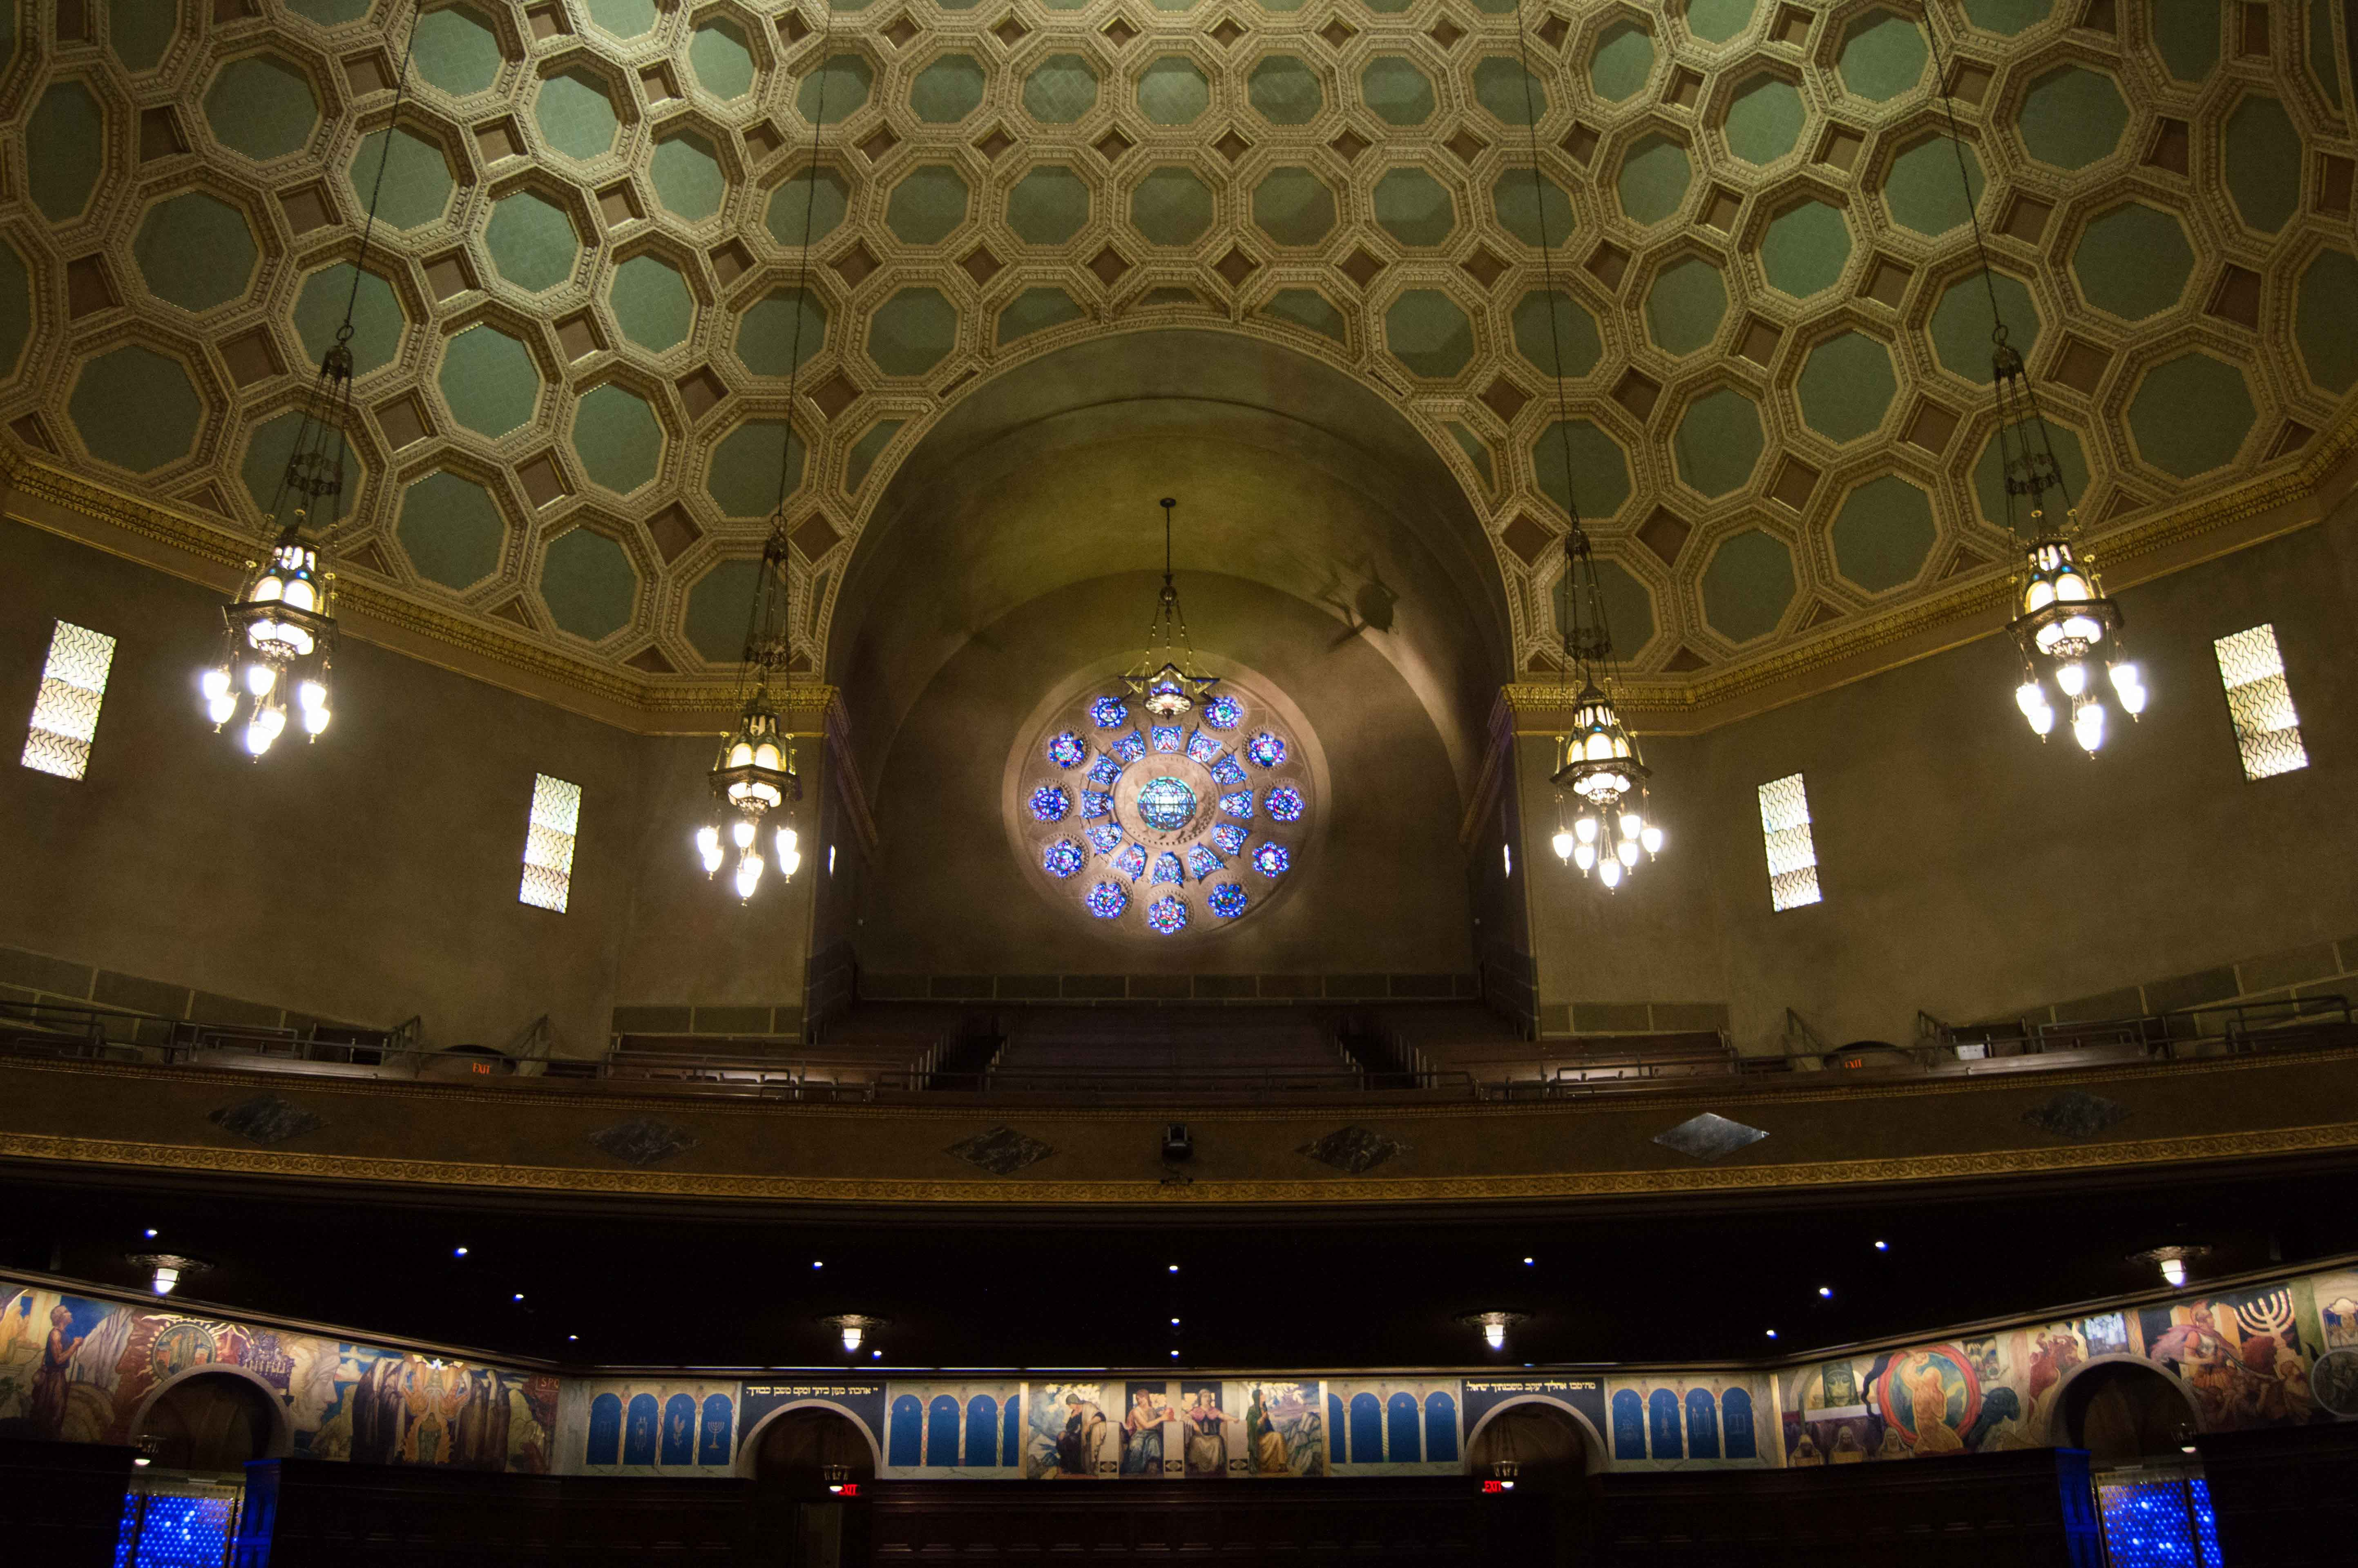 Wilshire Boulevard Temple - Interior of the Sanctuary